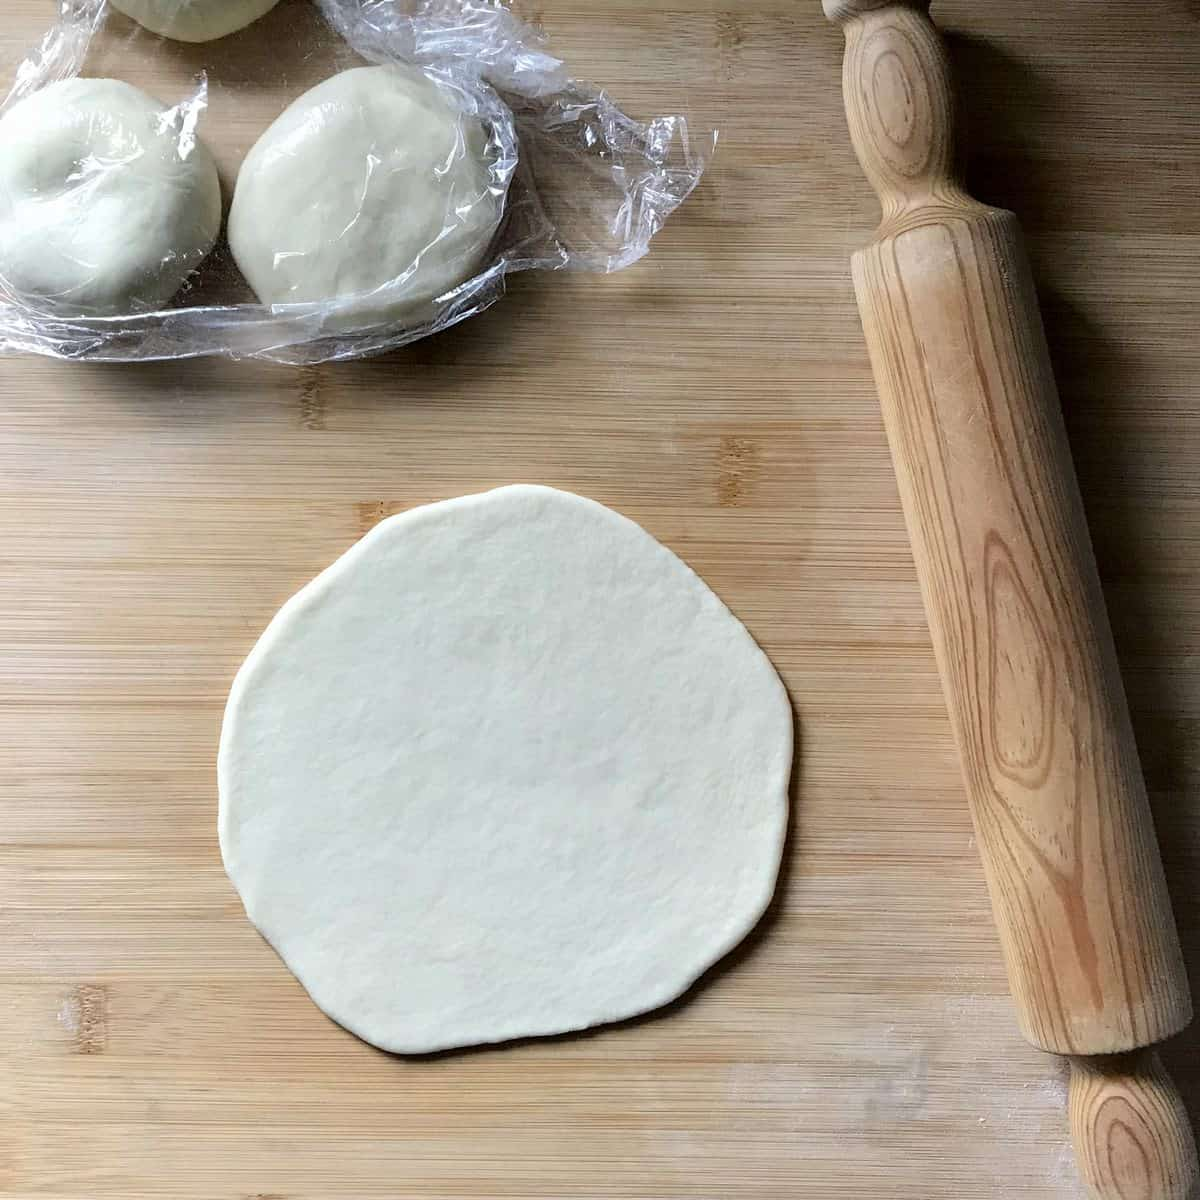 A rolled out piada on a wooden board next to a rolling pin.